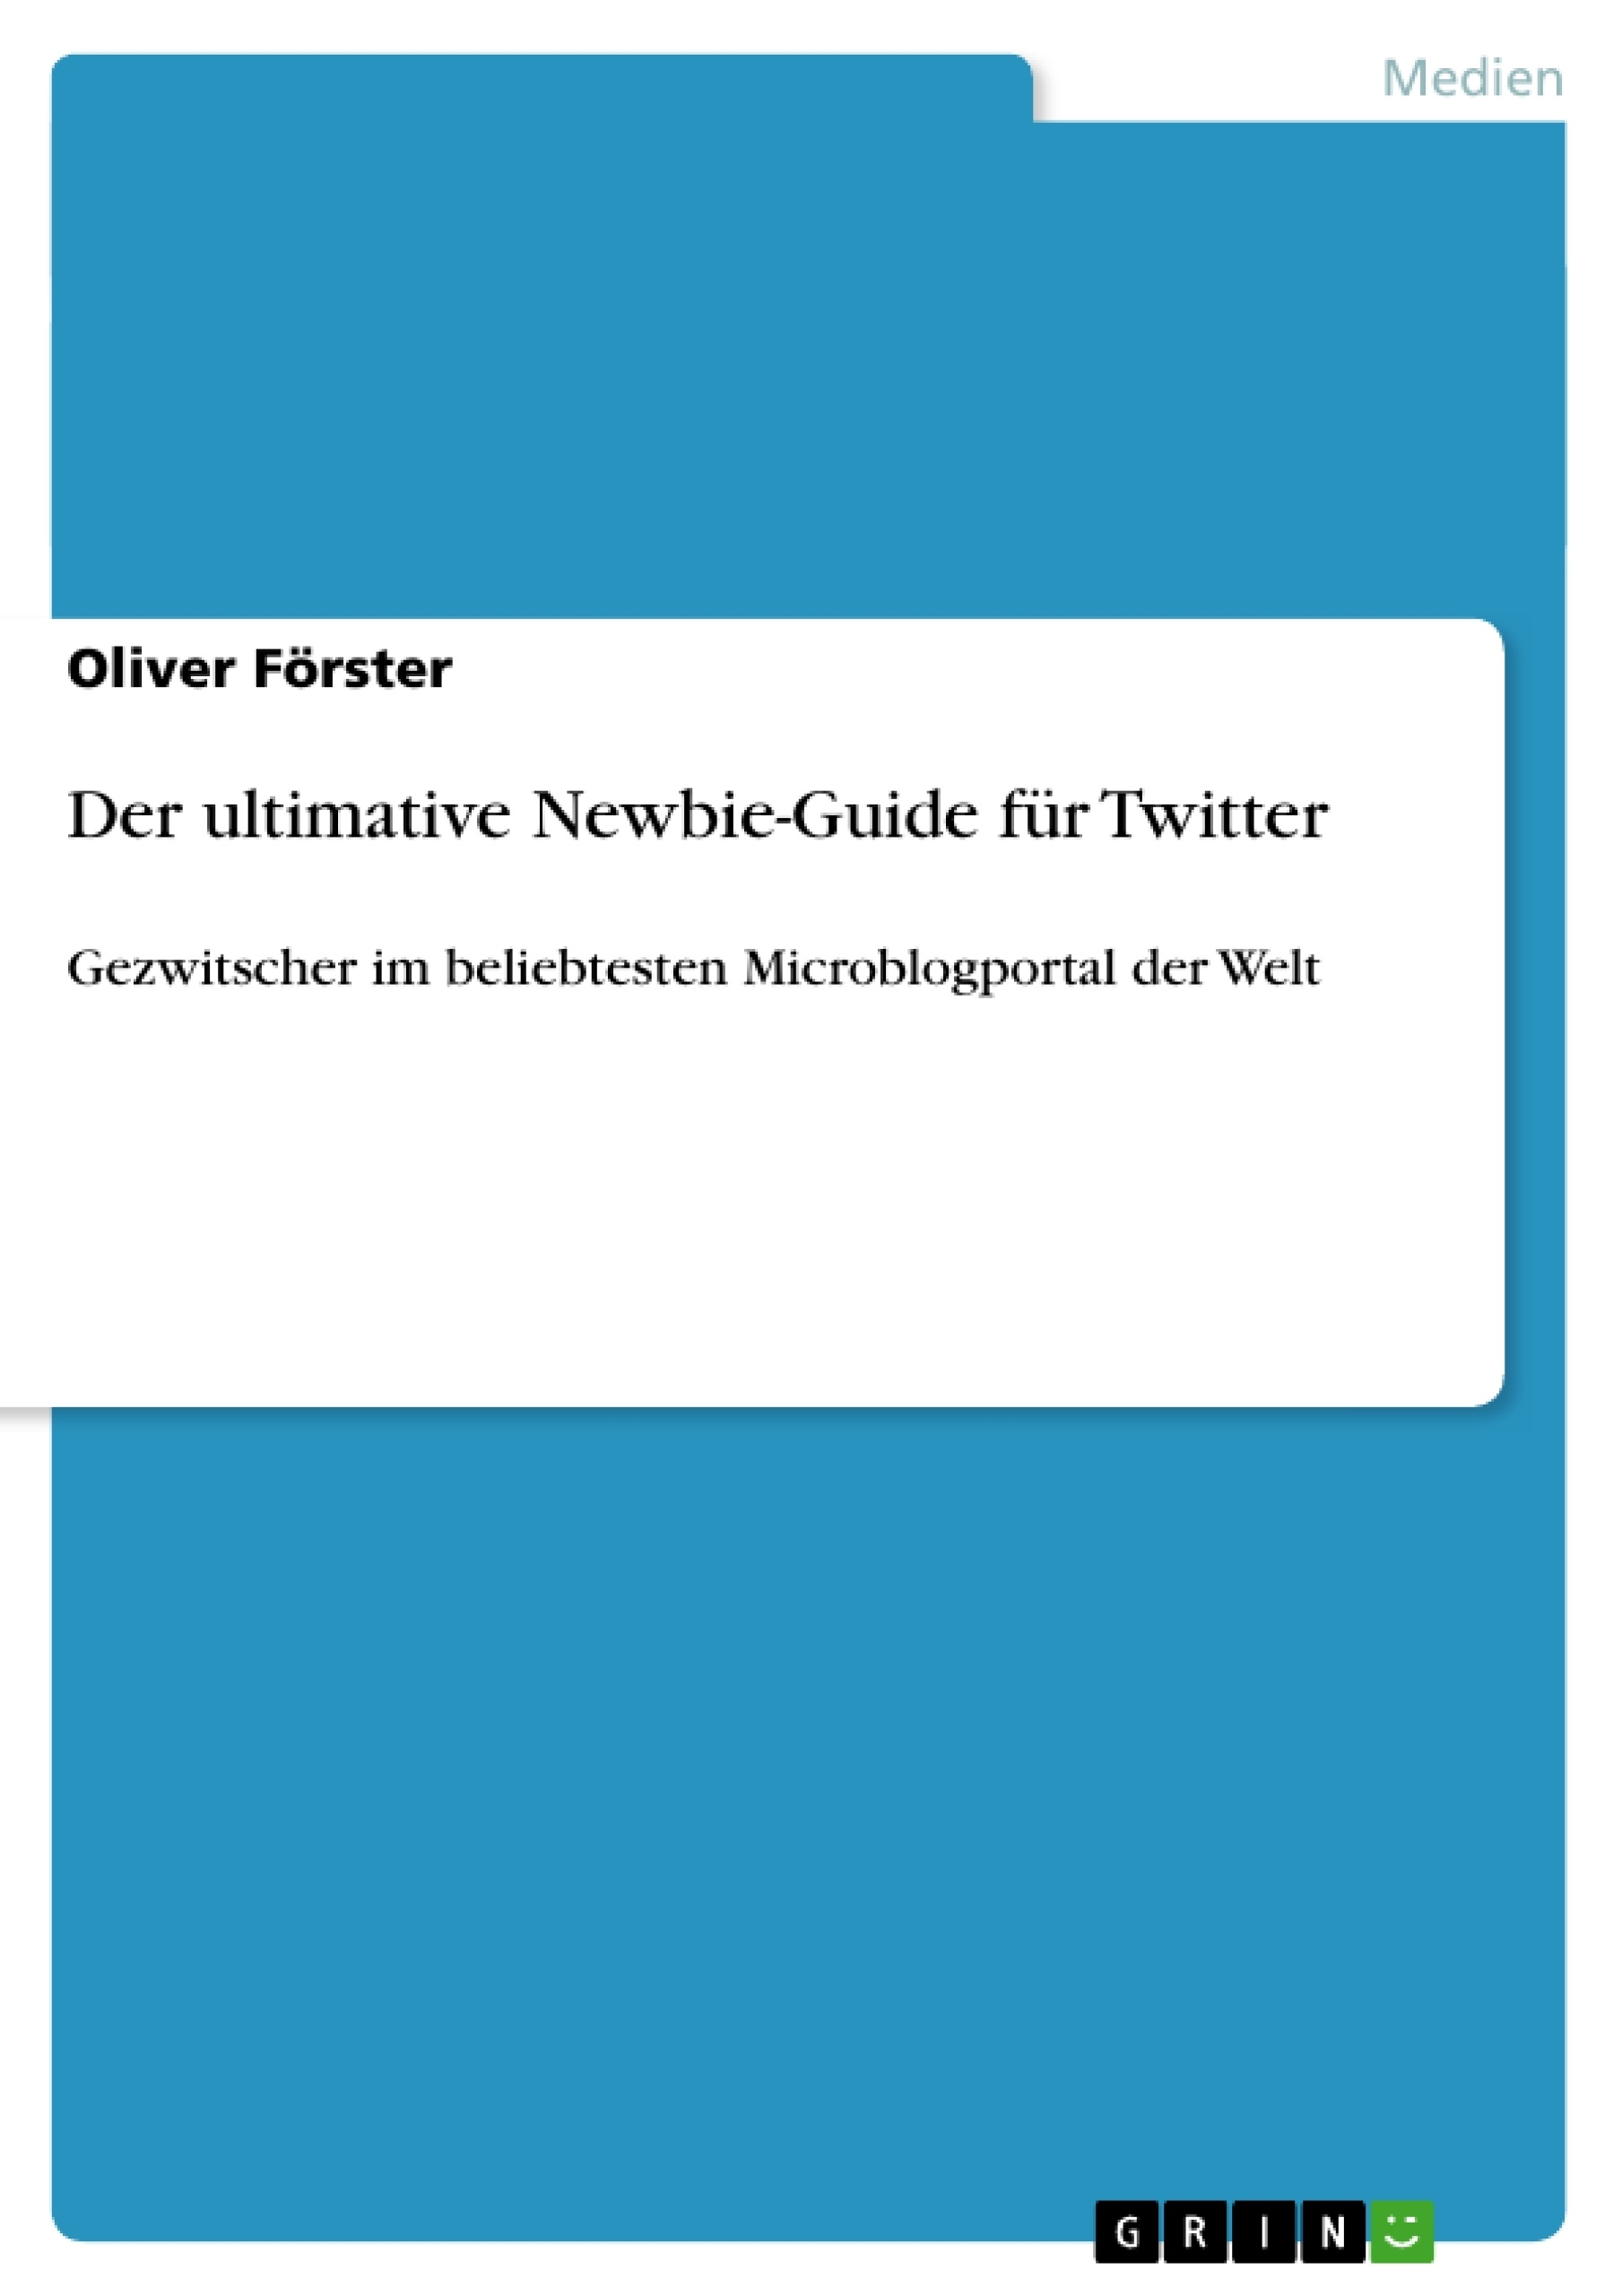 Titel: Der ultimative Newbie-Guide für Twitter